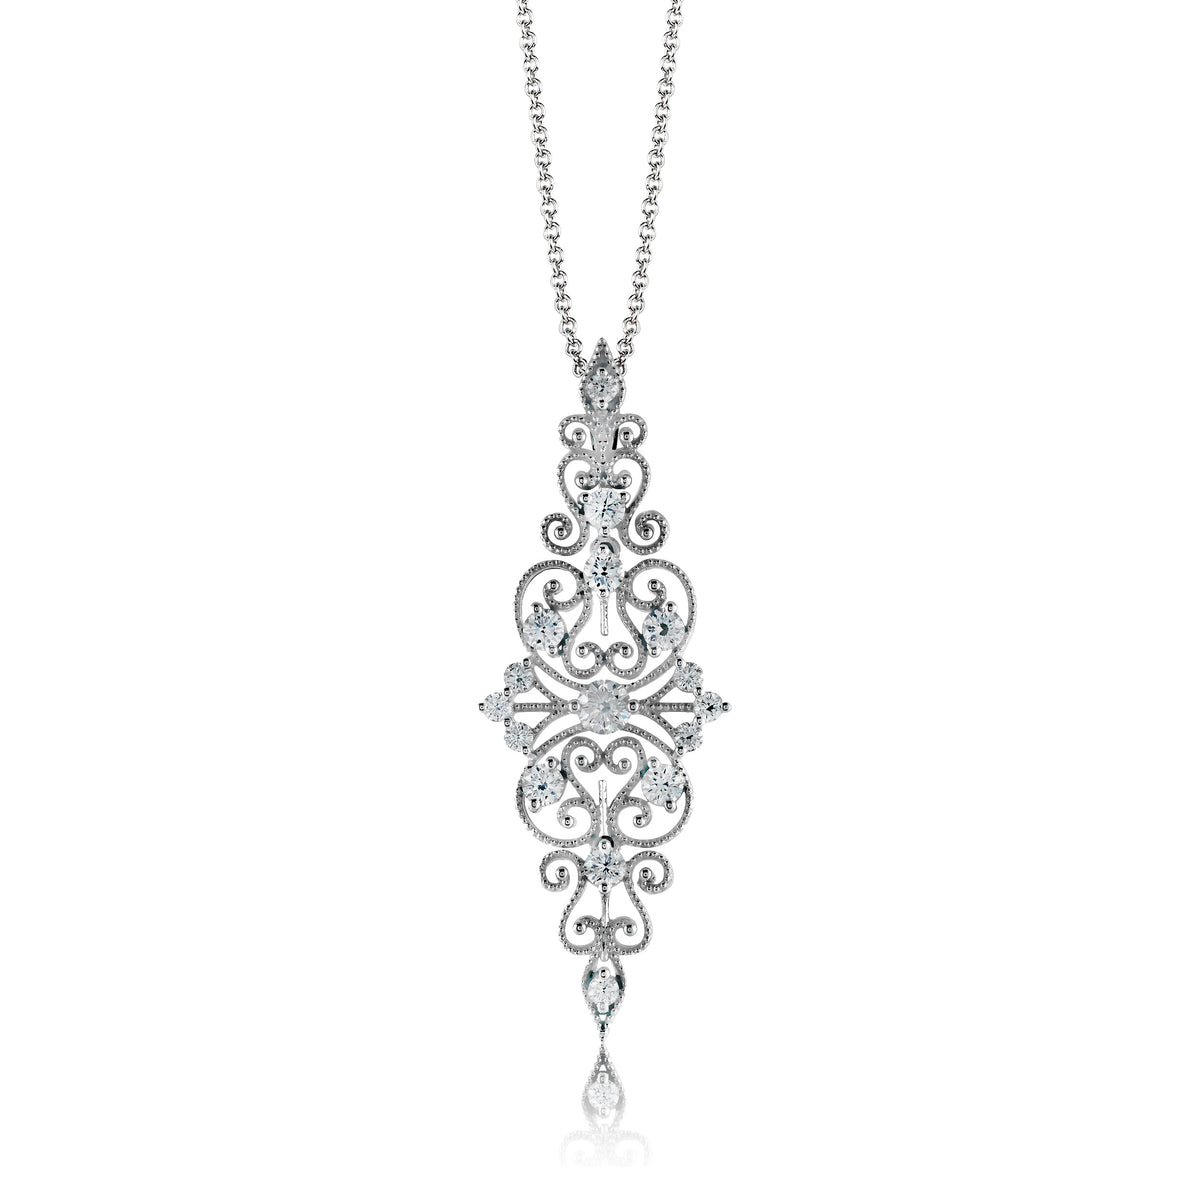 Simon G 18K White Gold Filigree Design Pendant